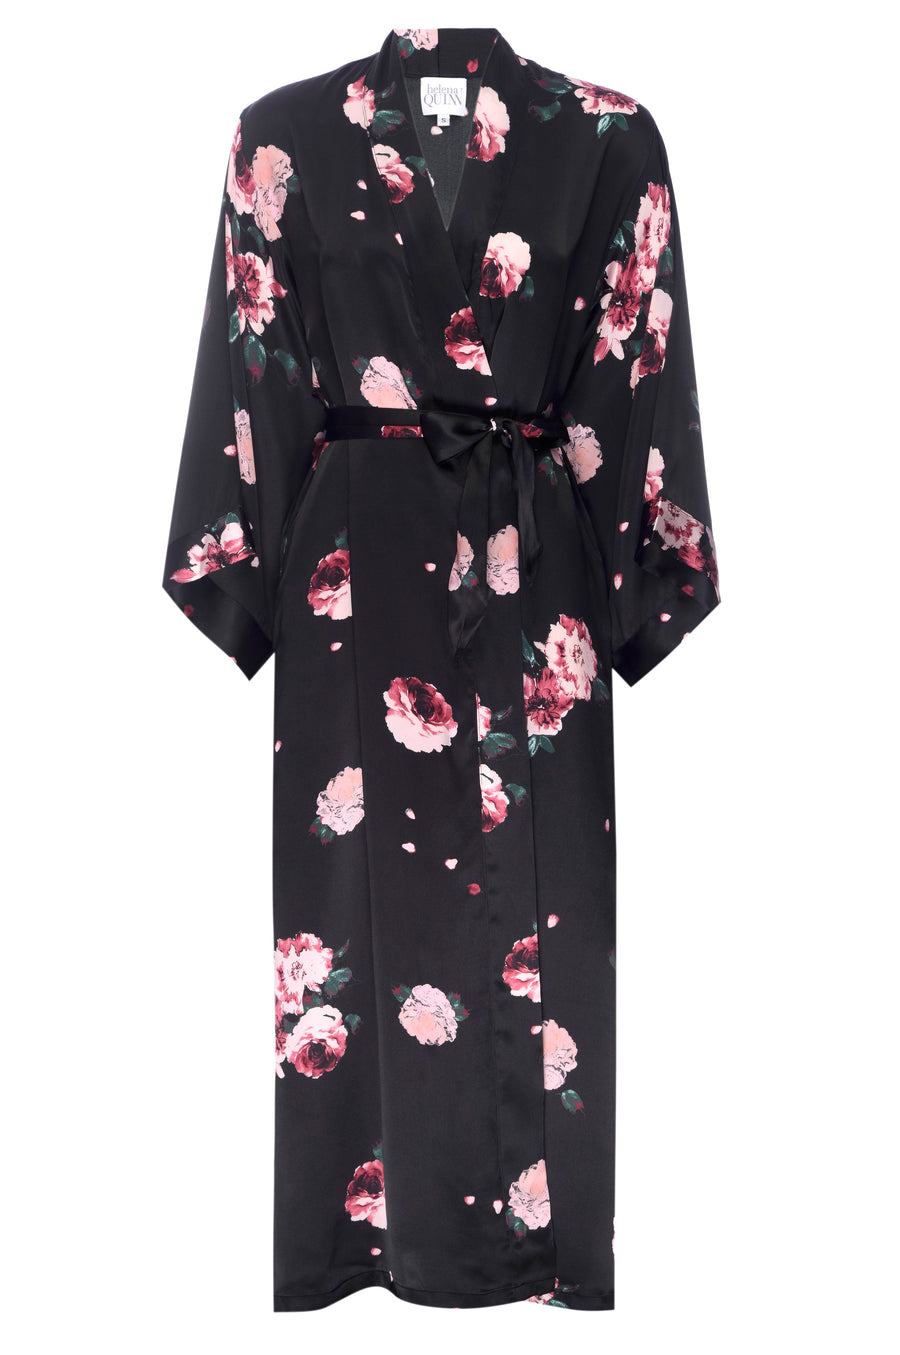 PRESALE Silk Charmeuse Long Silk Robe: Black Rose Print